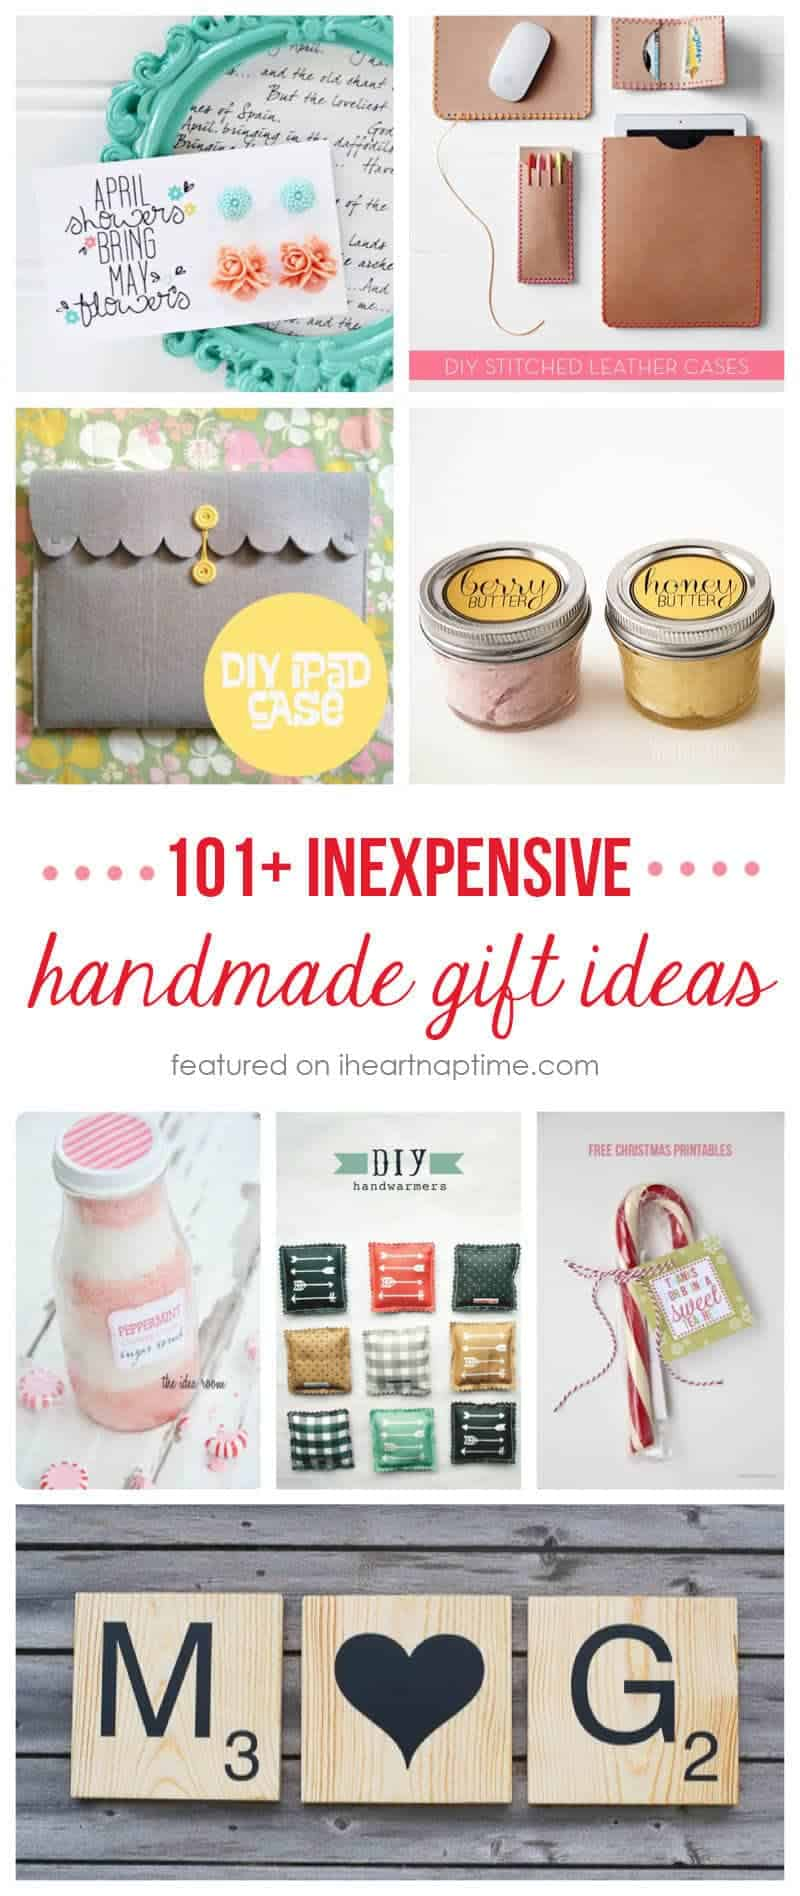 Christmas Crafts Ideas For Gifts Part - 43: 101+ Inexpensive Handmade Christmas Gifts On Iheartnaptime.com